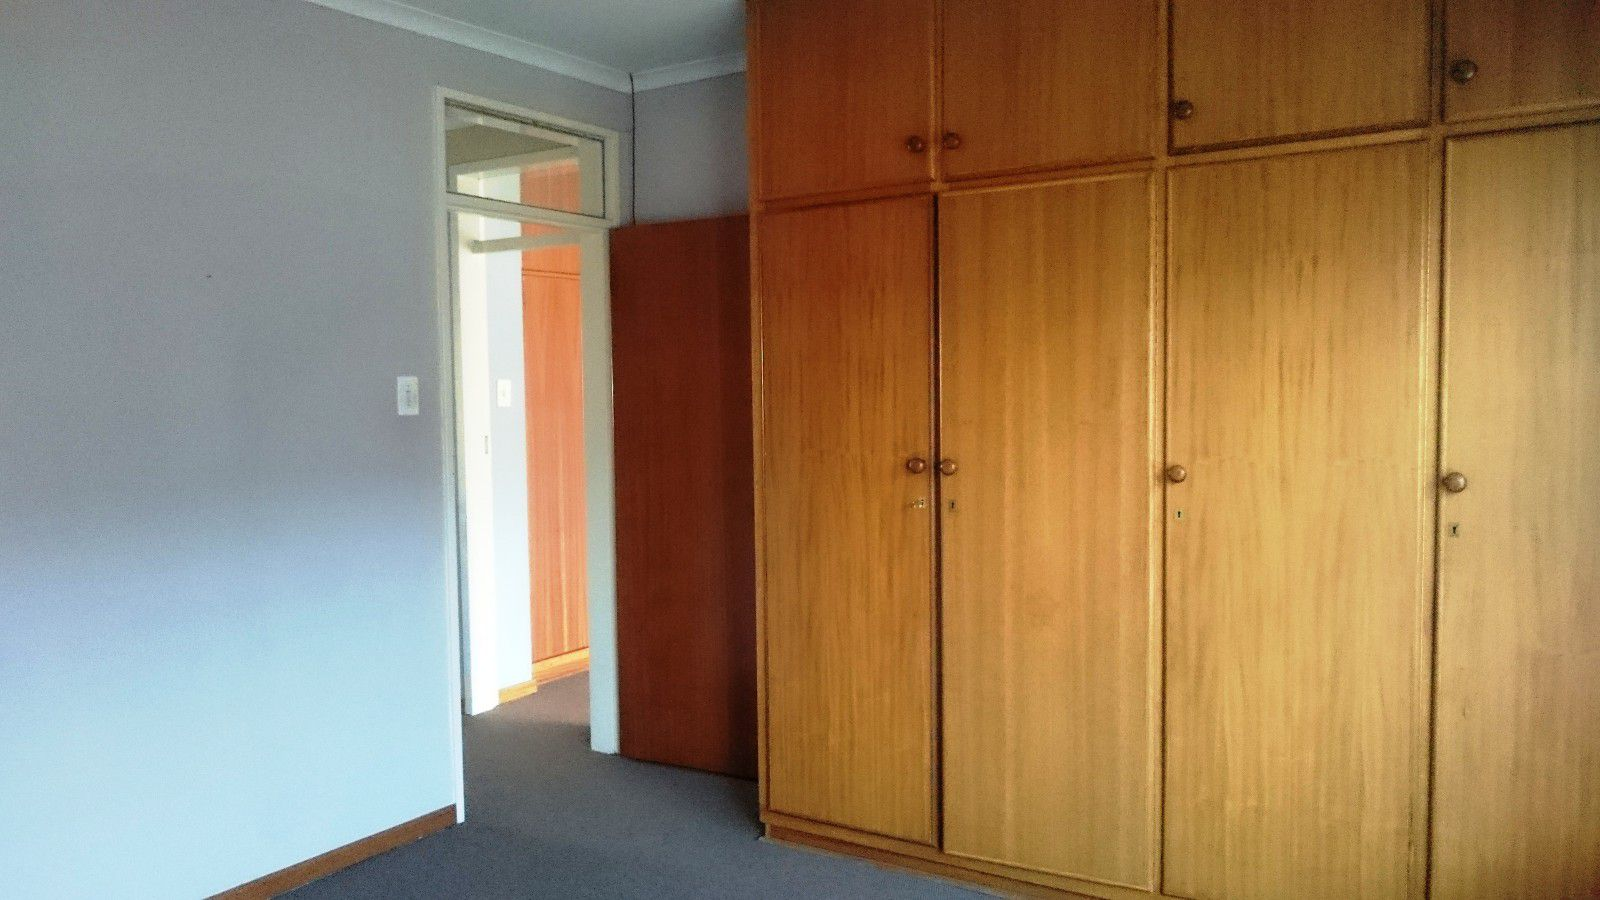 Potchefstroom Central property for sale. Ref No: 13449643. Picture no 19